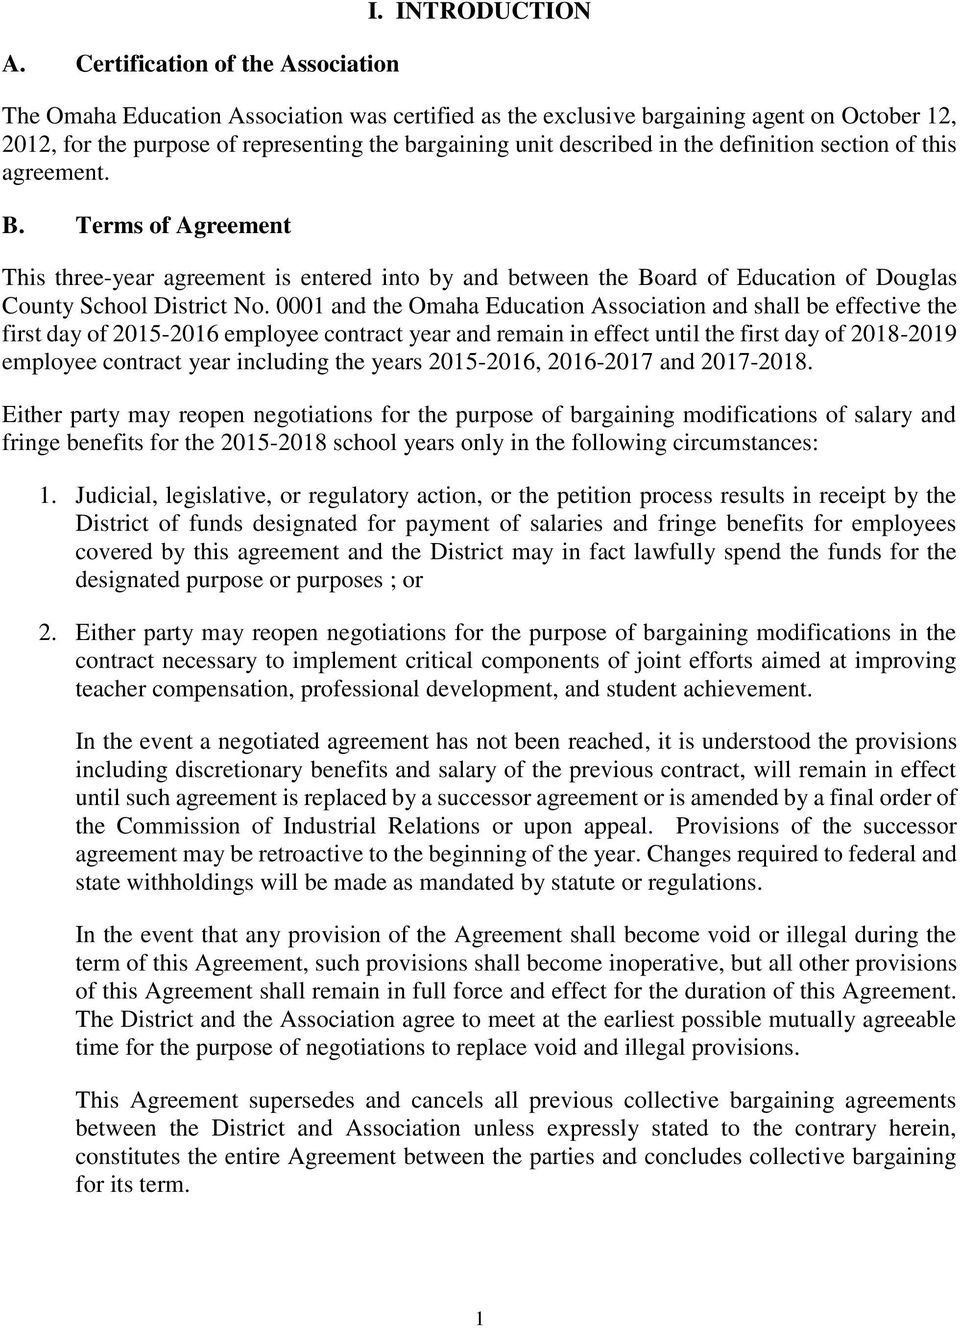 section of this agreement. B. Terms of Agreement This three-year agreement is entered into by and between the Board of Education of Douglas County School District No.